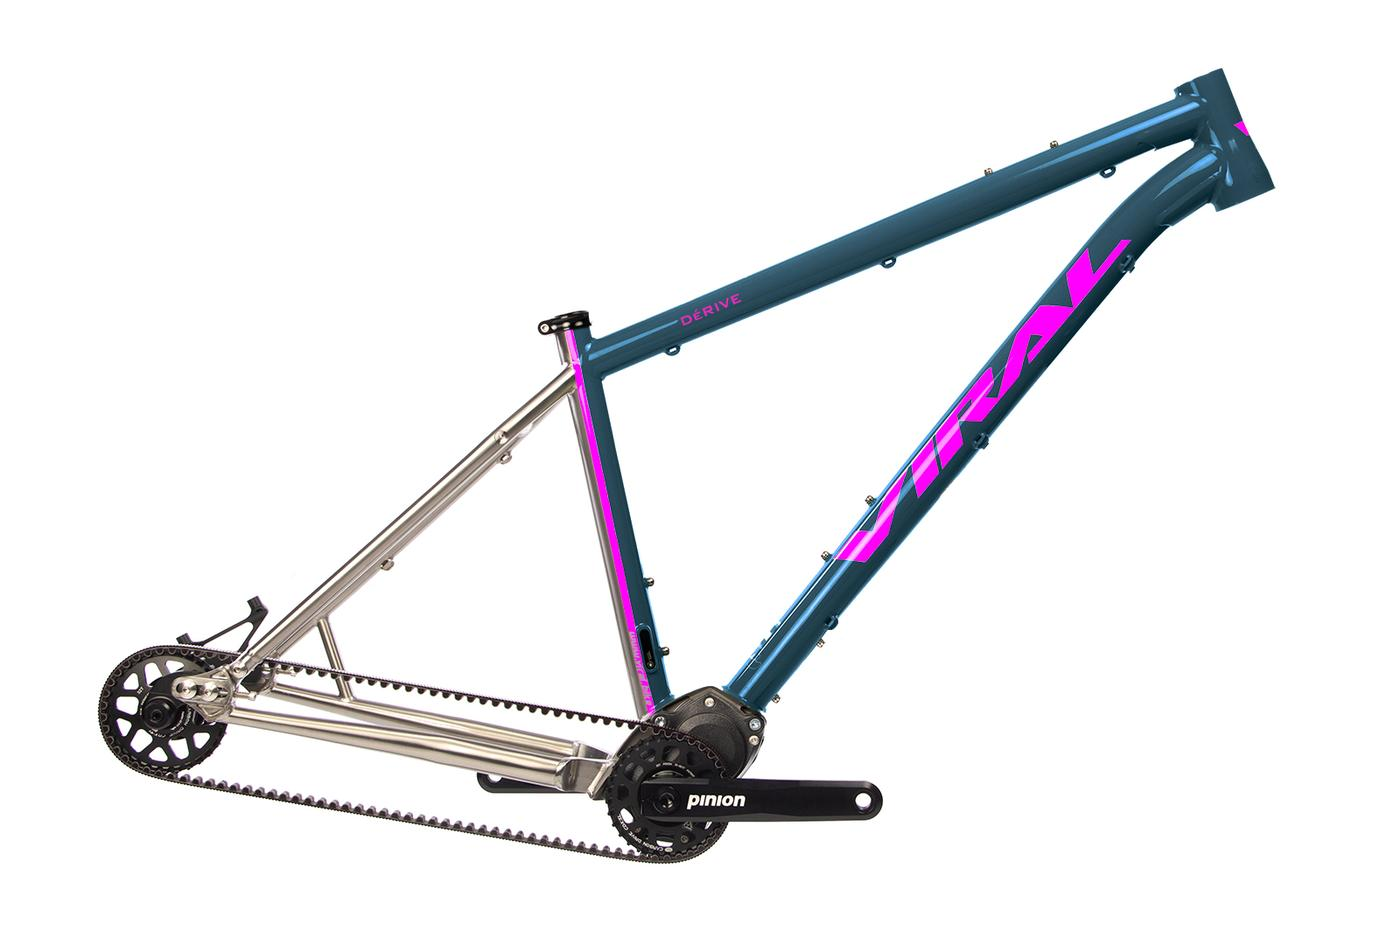 Viral Bikes Launch the Dérive and Skeptic Titanium Hardtails with Pinion Gearbox